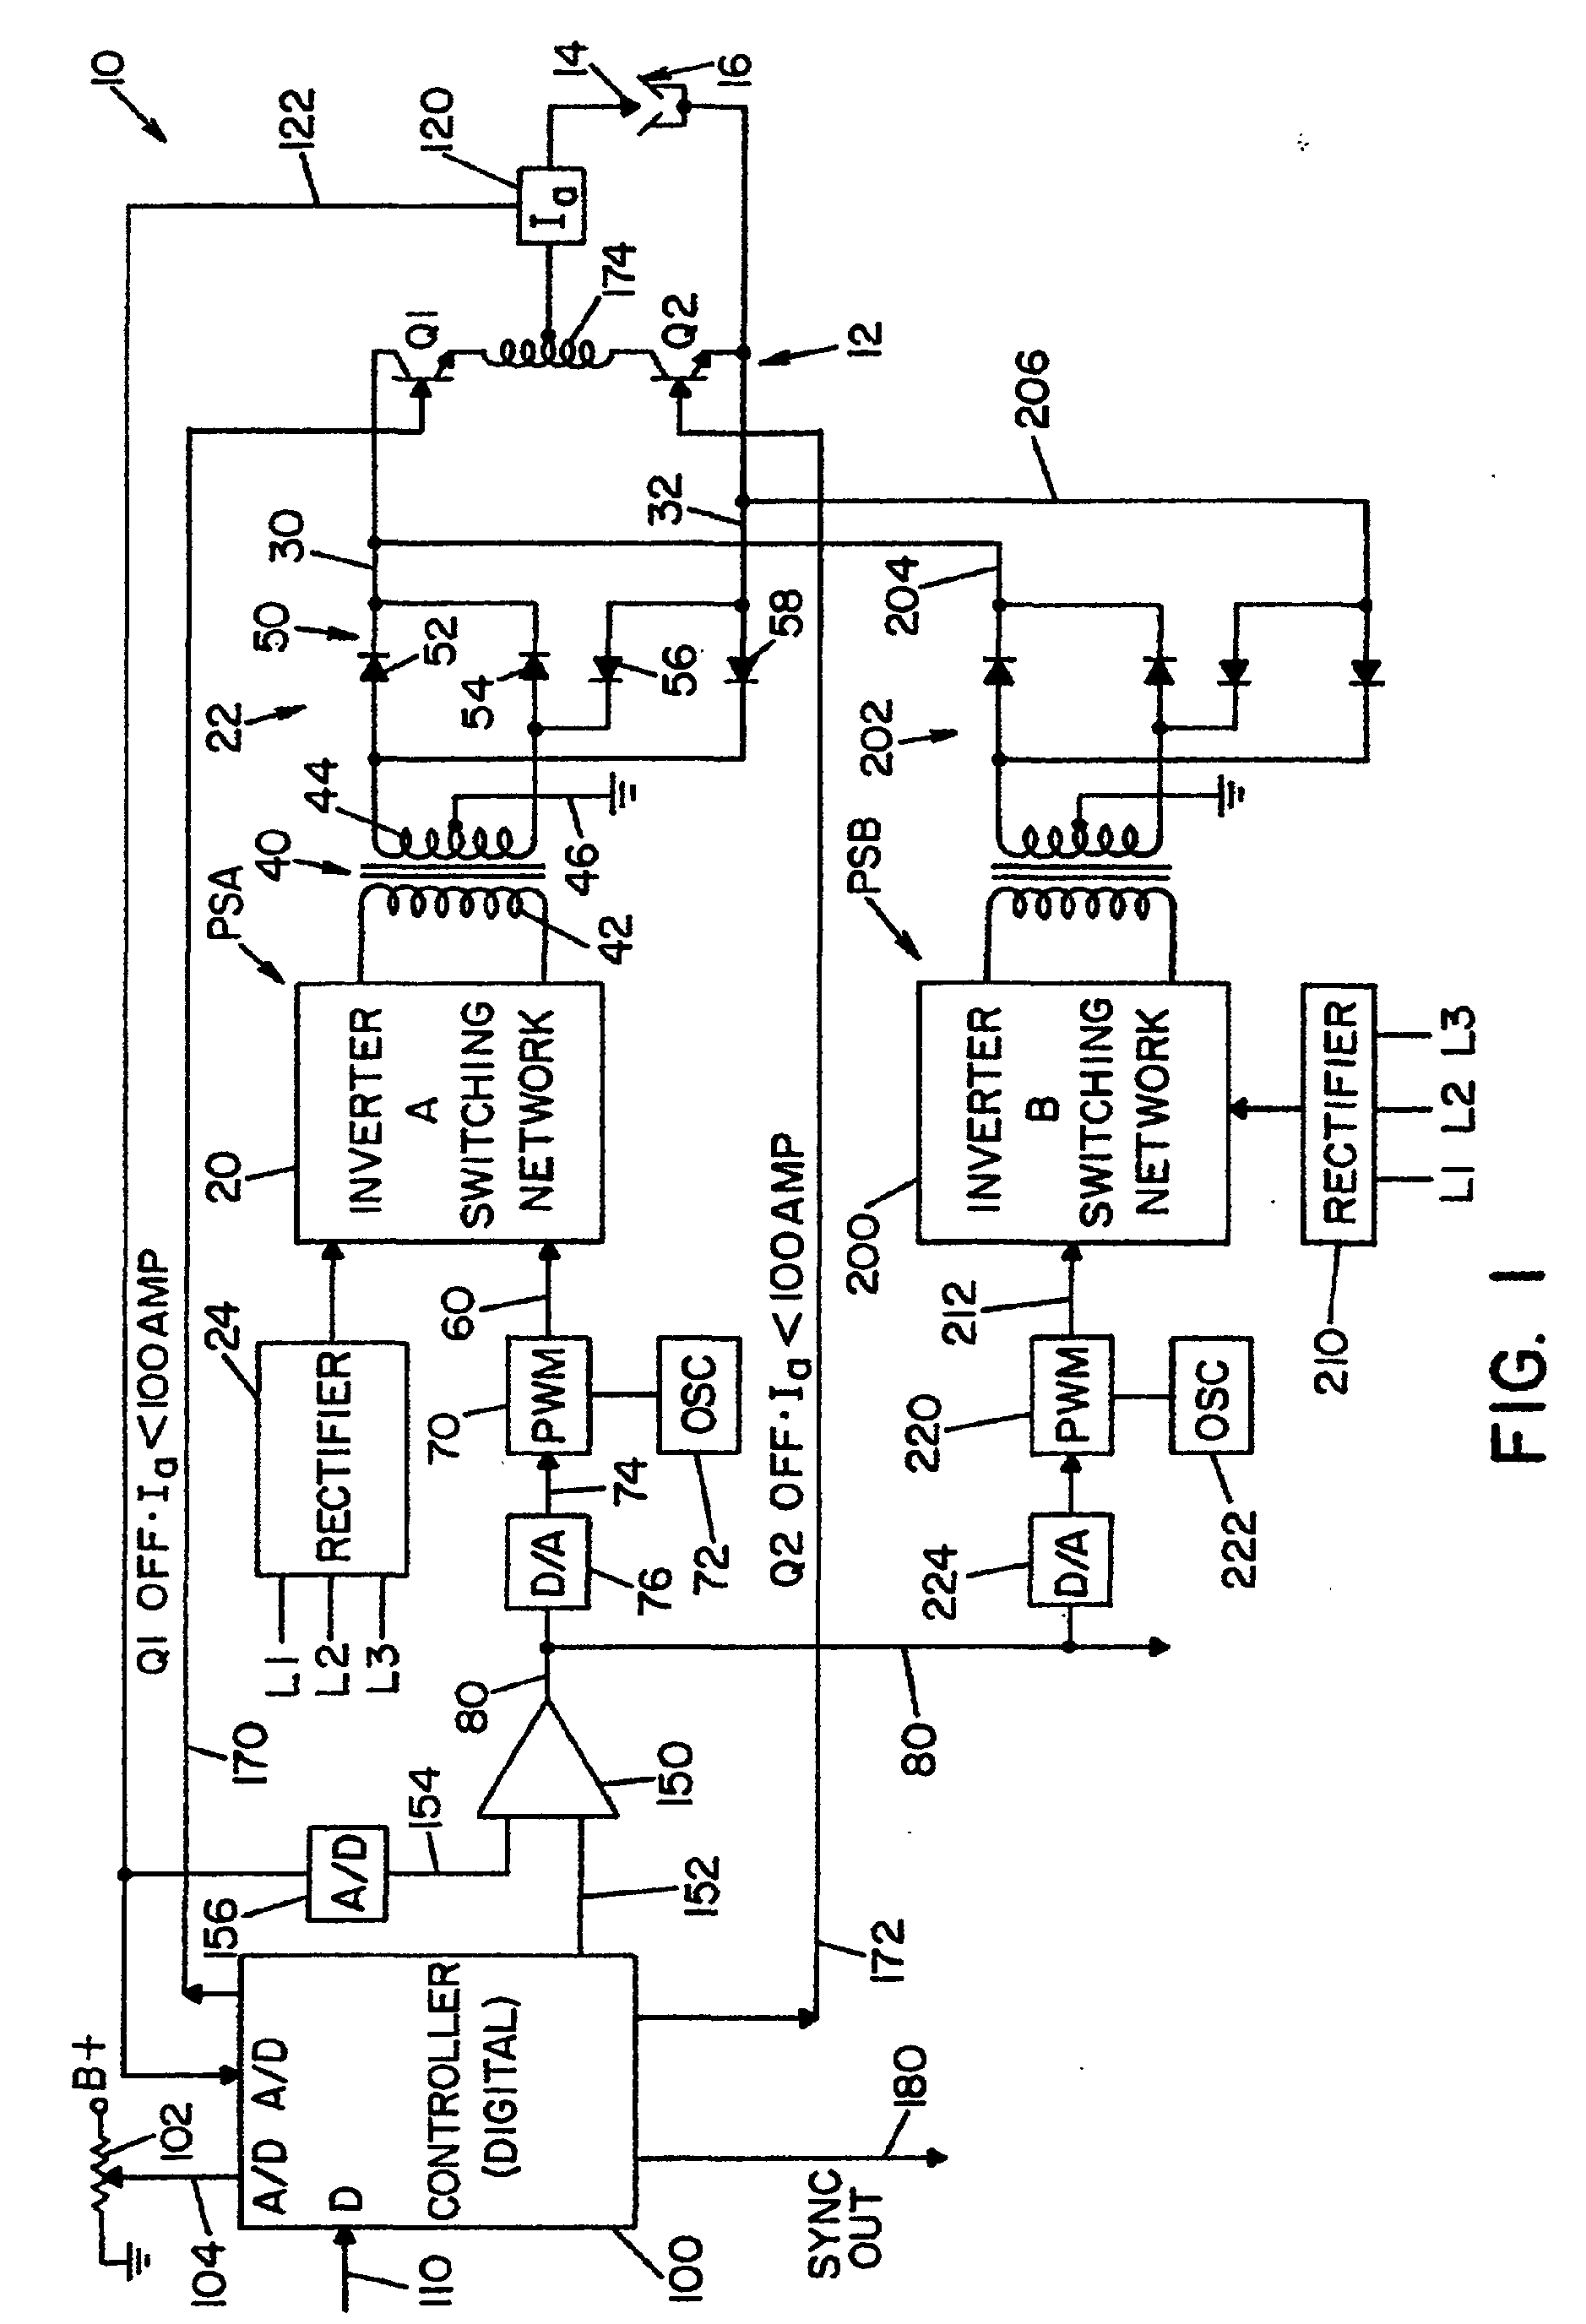 mig welding circuit diagram basic electronics wiring diagram Equipment Trailer Wiring Diagram mig welder wiring diagram wiring diagram databasearc welder wiring diagram wiring library lincoln mig welder wiring